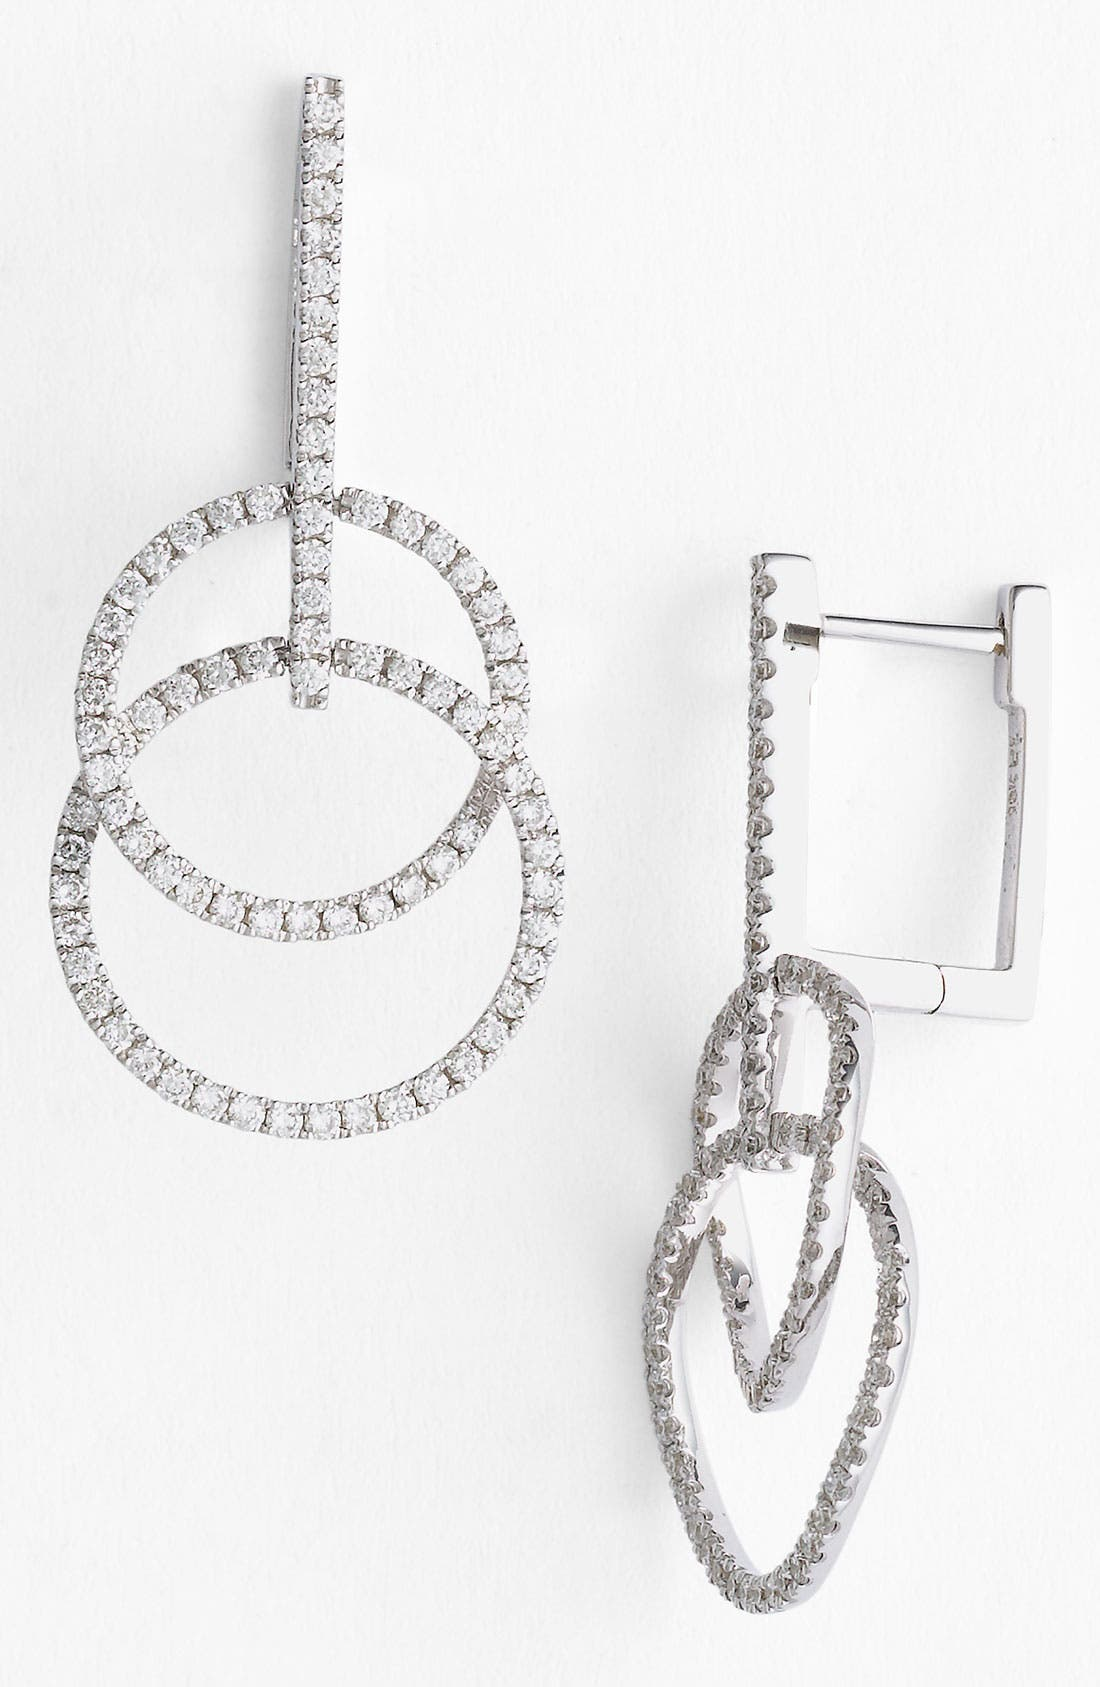 Main Image - Bony Levy 'Circle Links' Diamond Earrings (Nordstrom Exclusive)